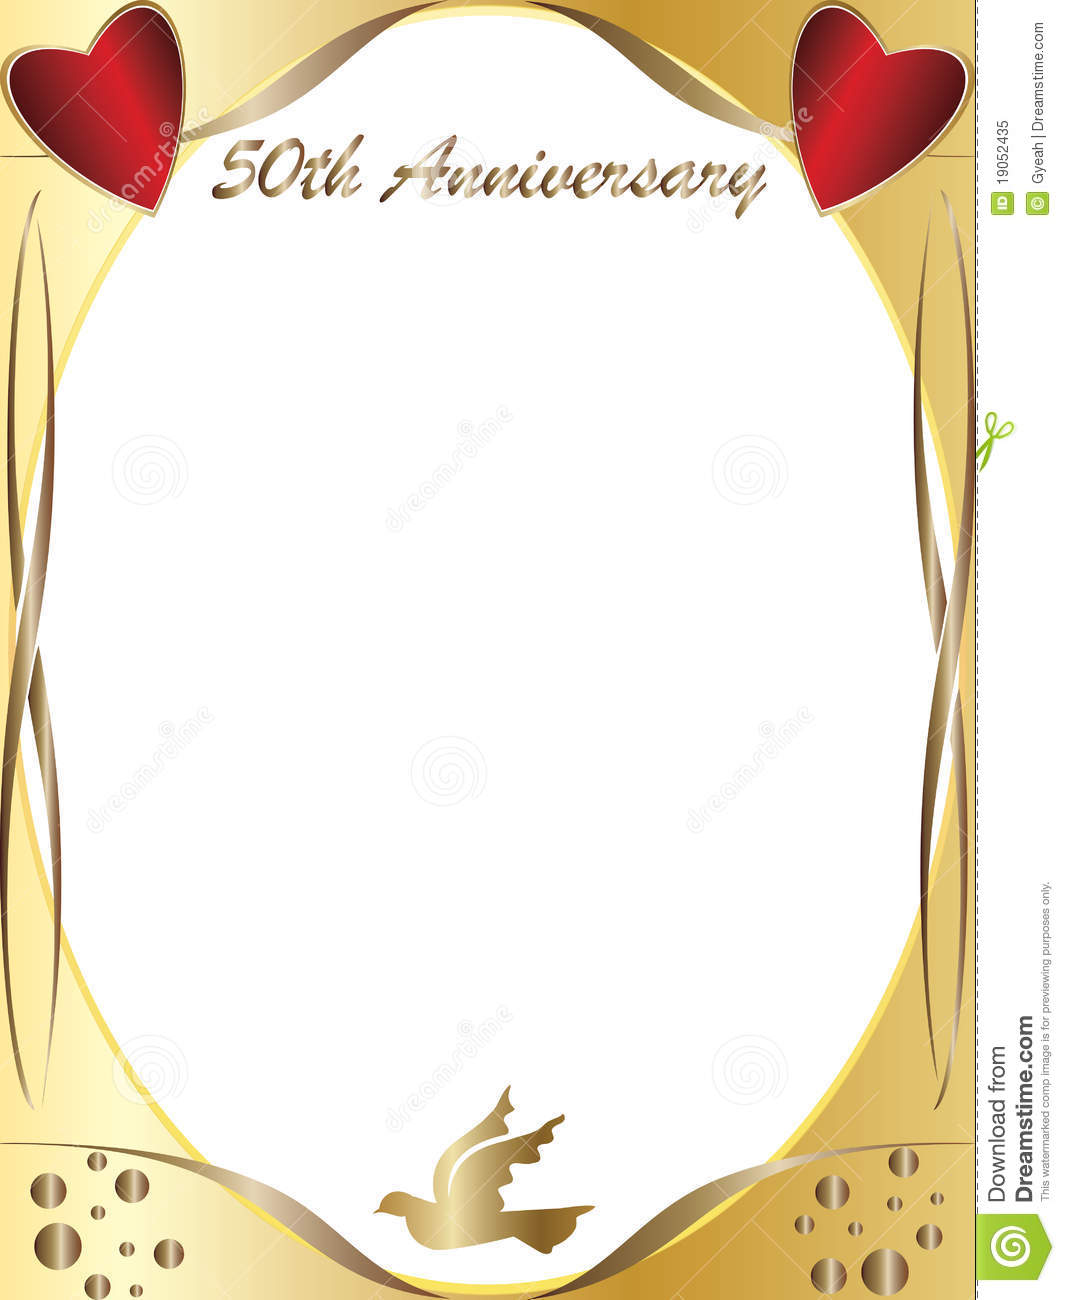 50th wedding anniversary stock illustration. Illustration of drawing.